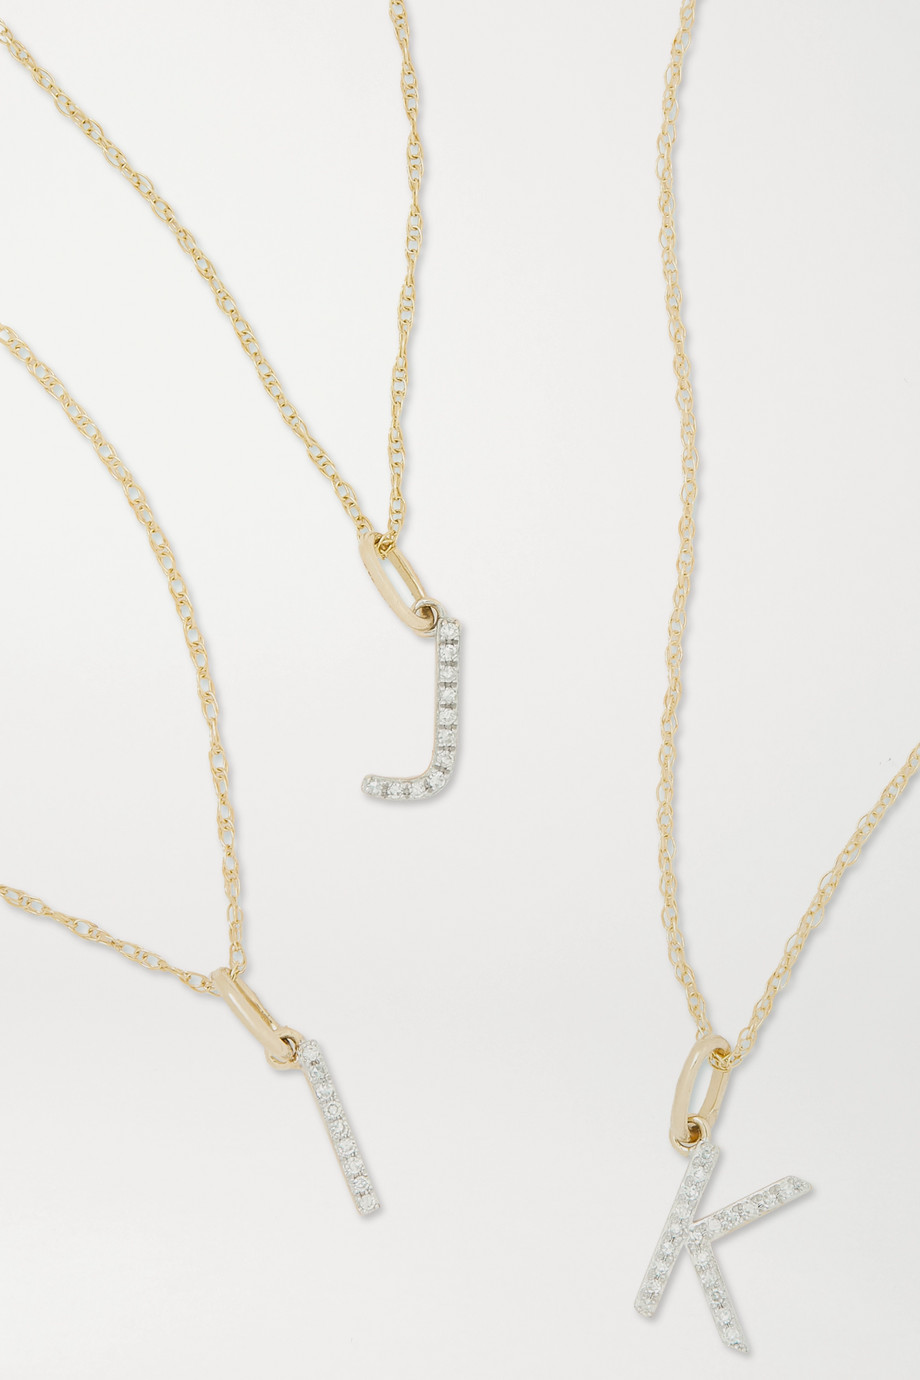 STONE AND STRAND Alphabet 9-karat gold diamond necklace